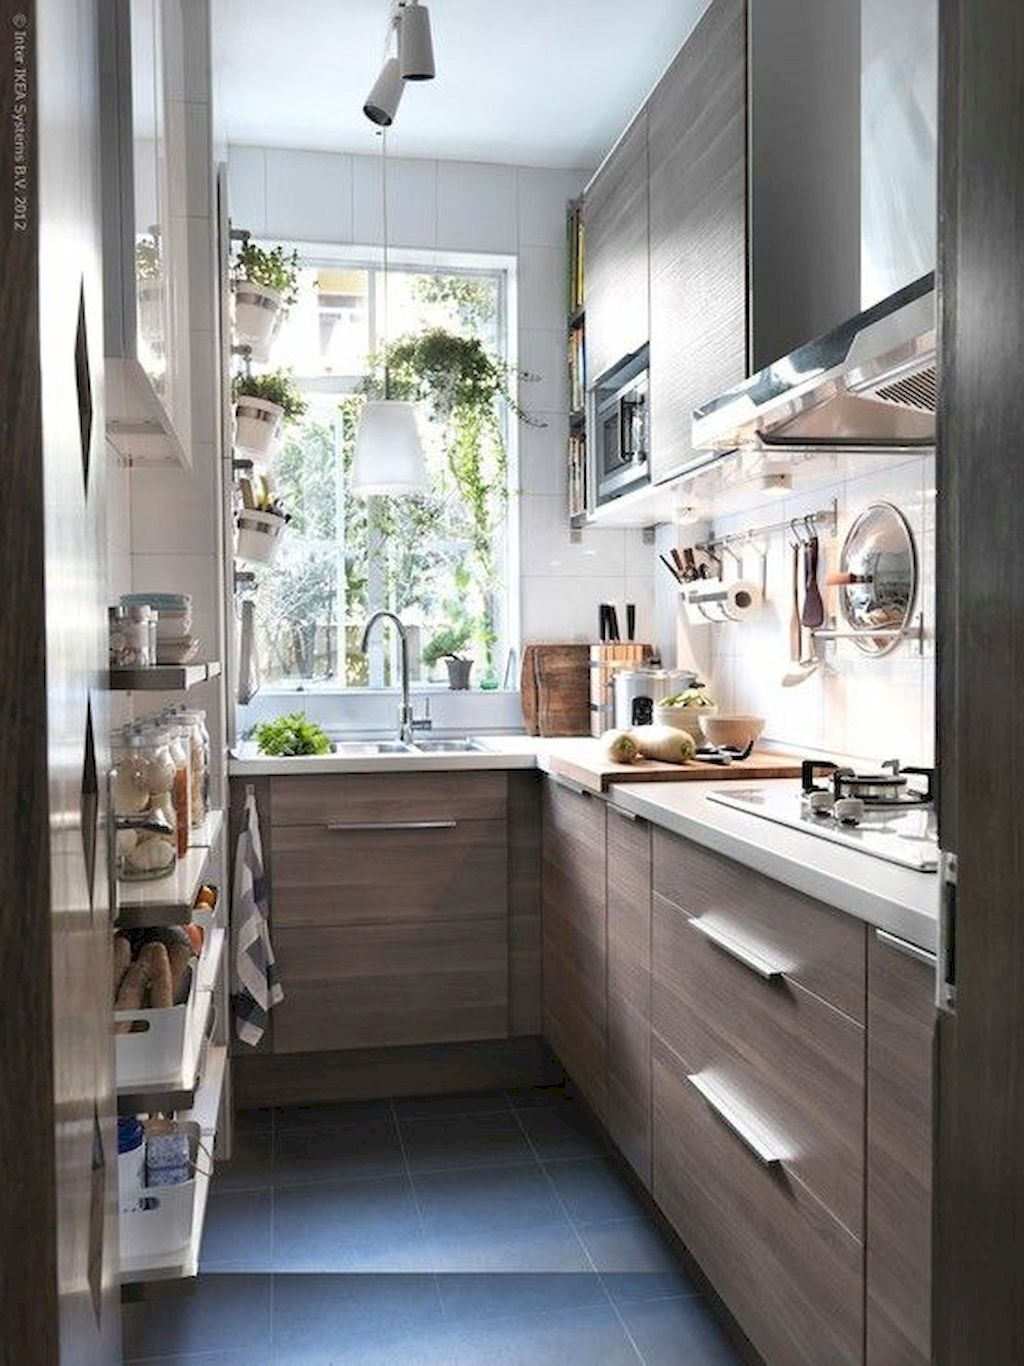 Astonishing Storage Ideas for Small Kitchens That Look ...